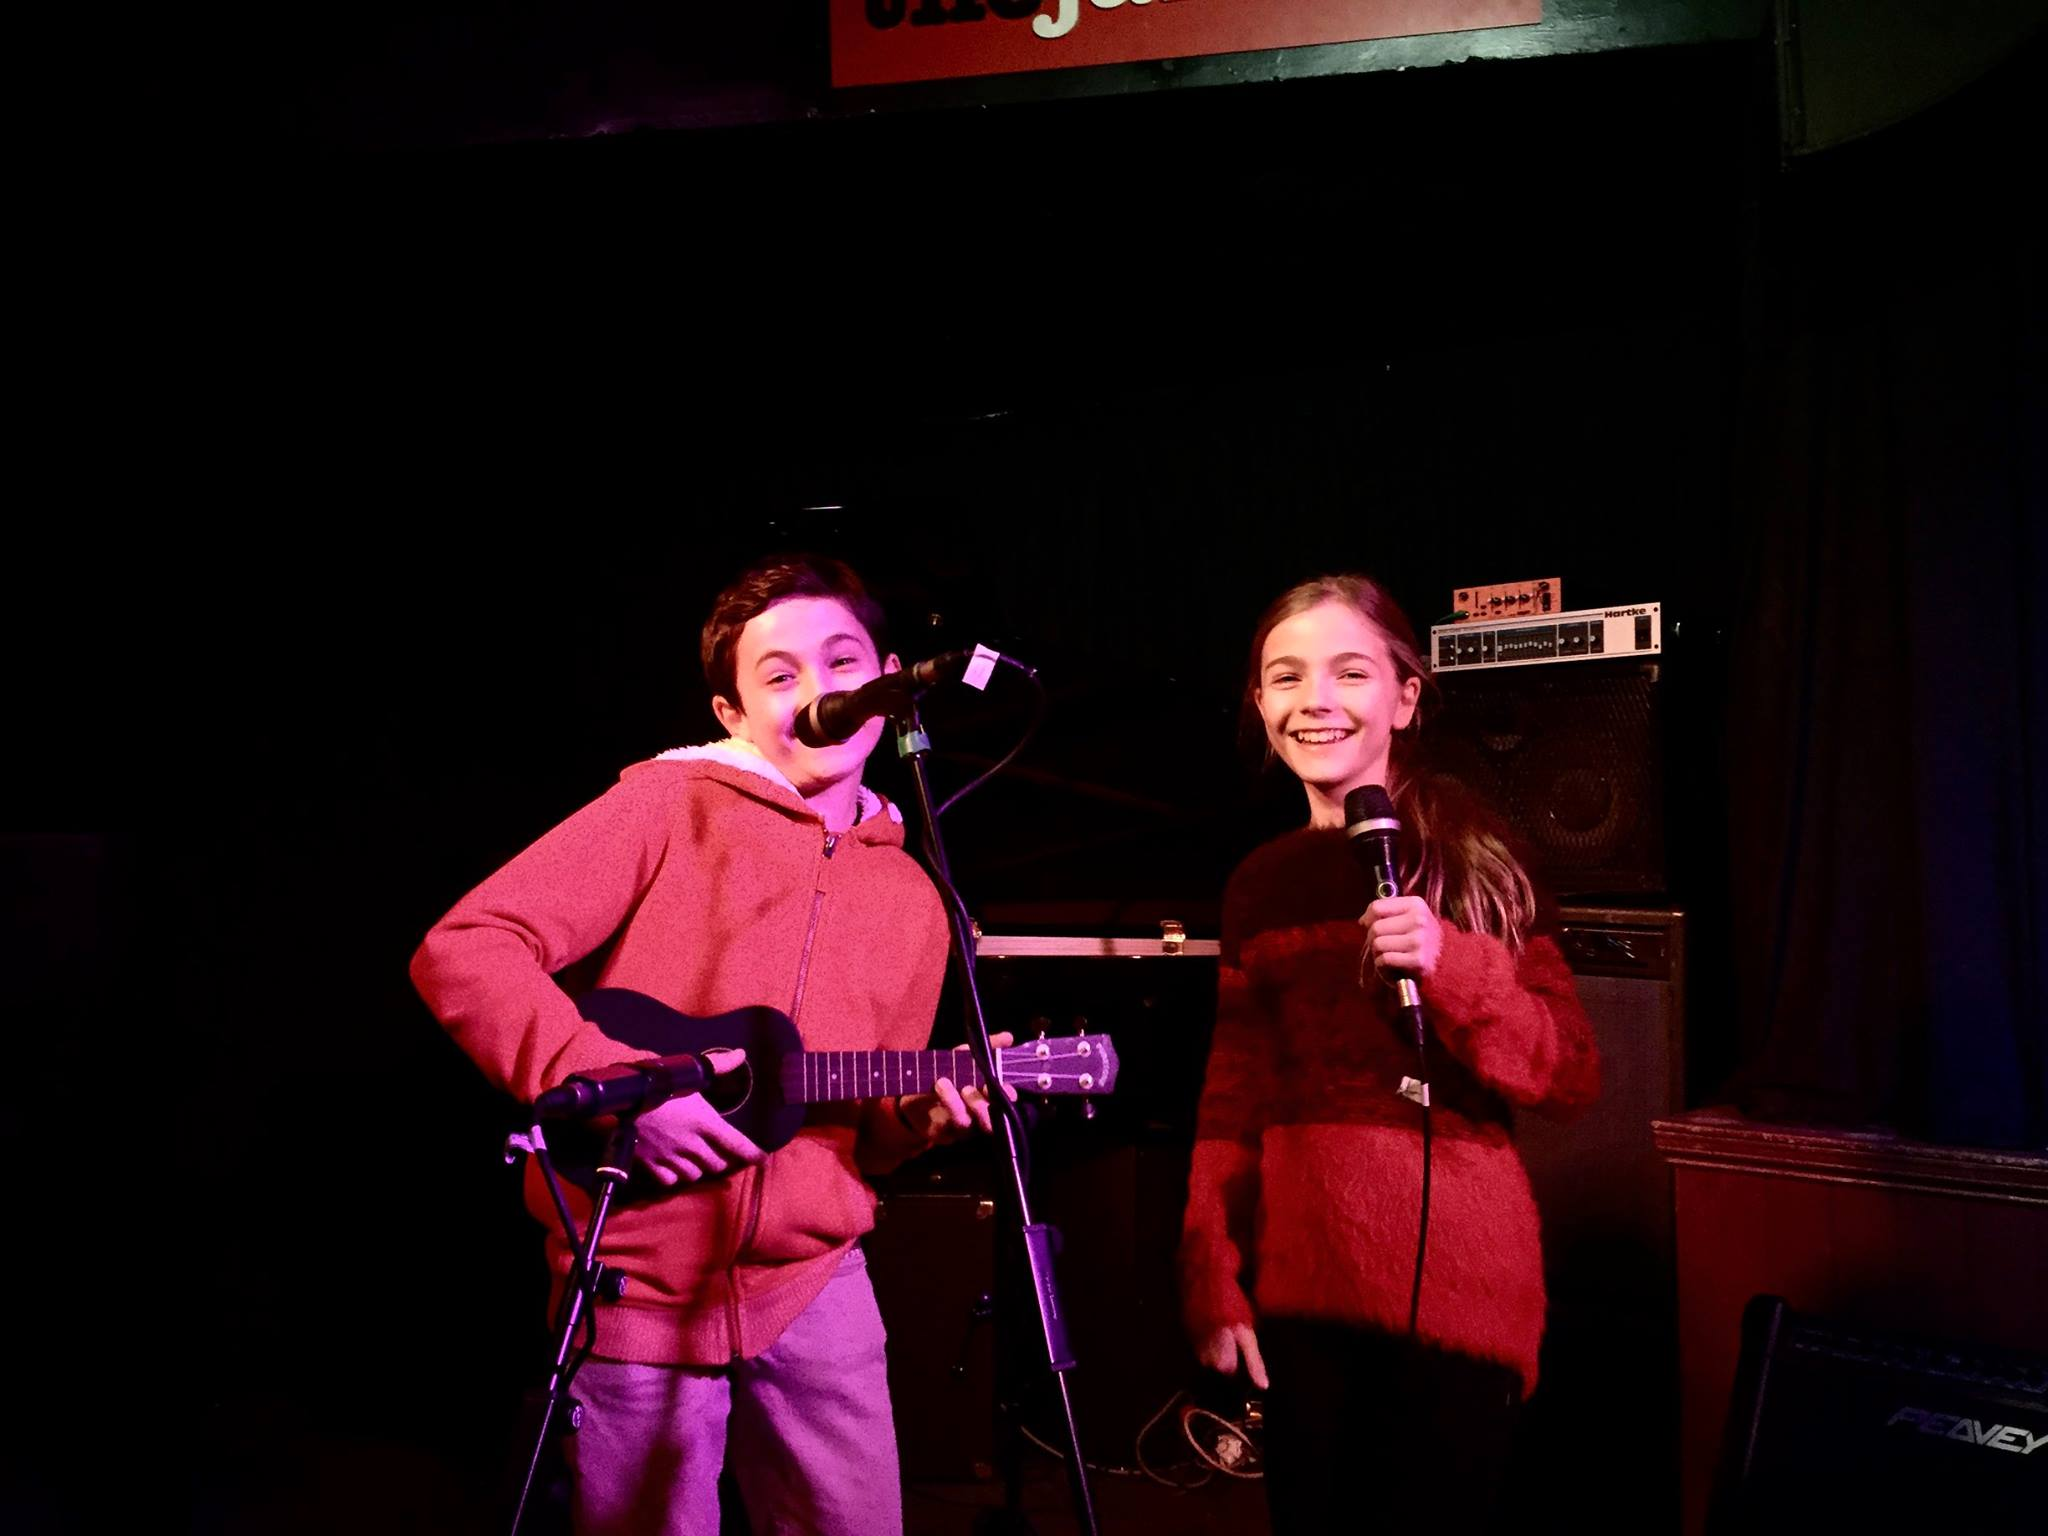 2 students performing at a showcase